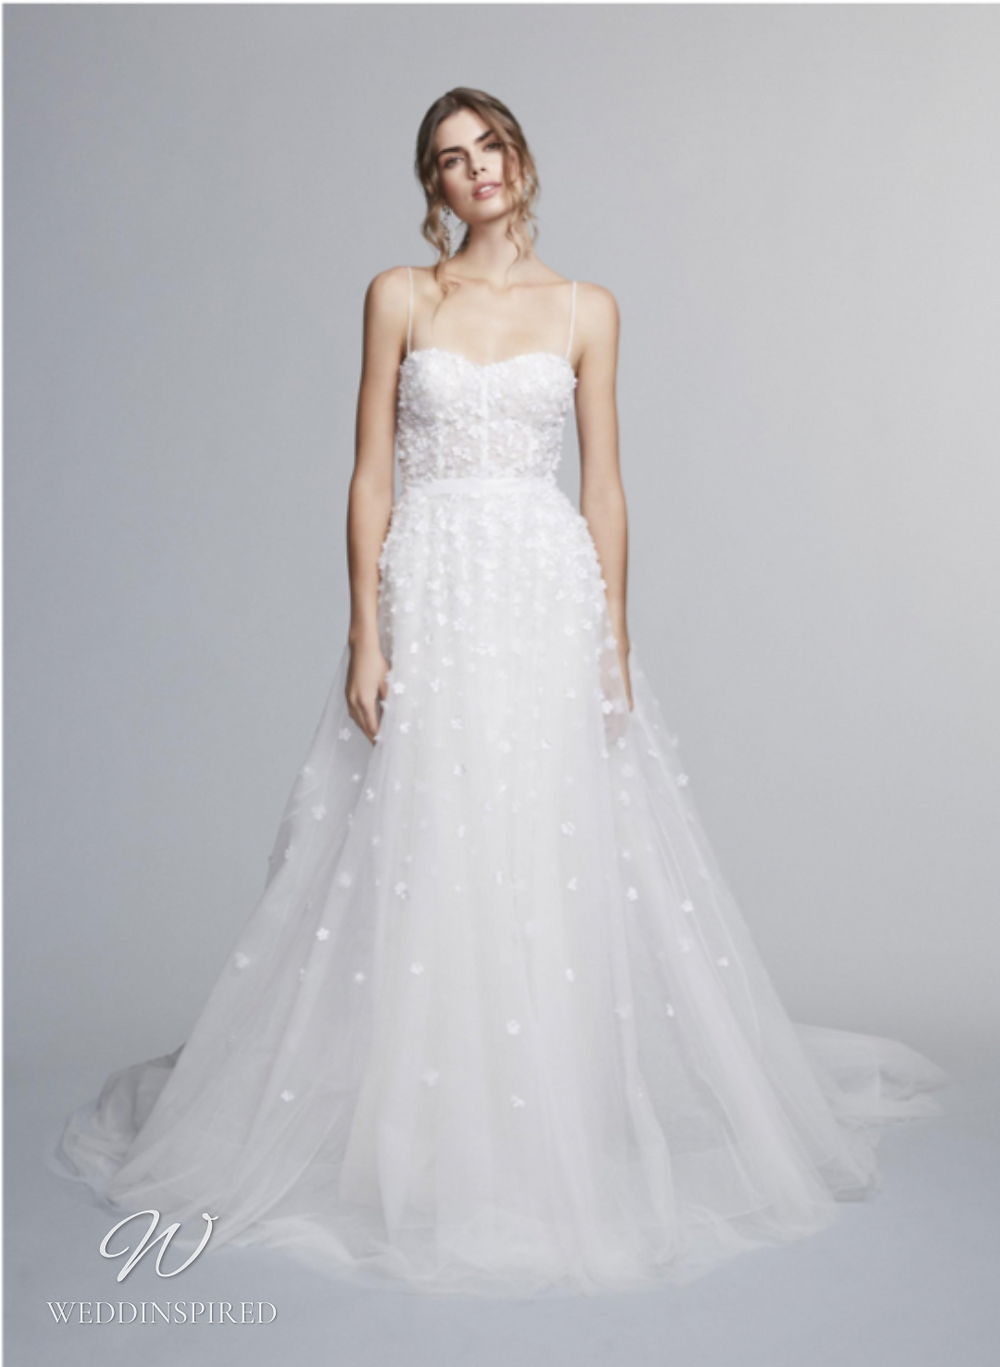 A Marchesa Notte Fall 2021 tulle A-line wedding dress with thin straps and floral detail